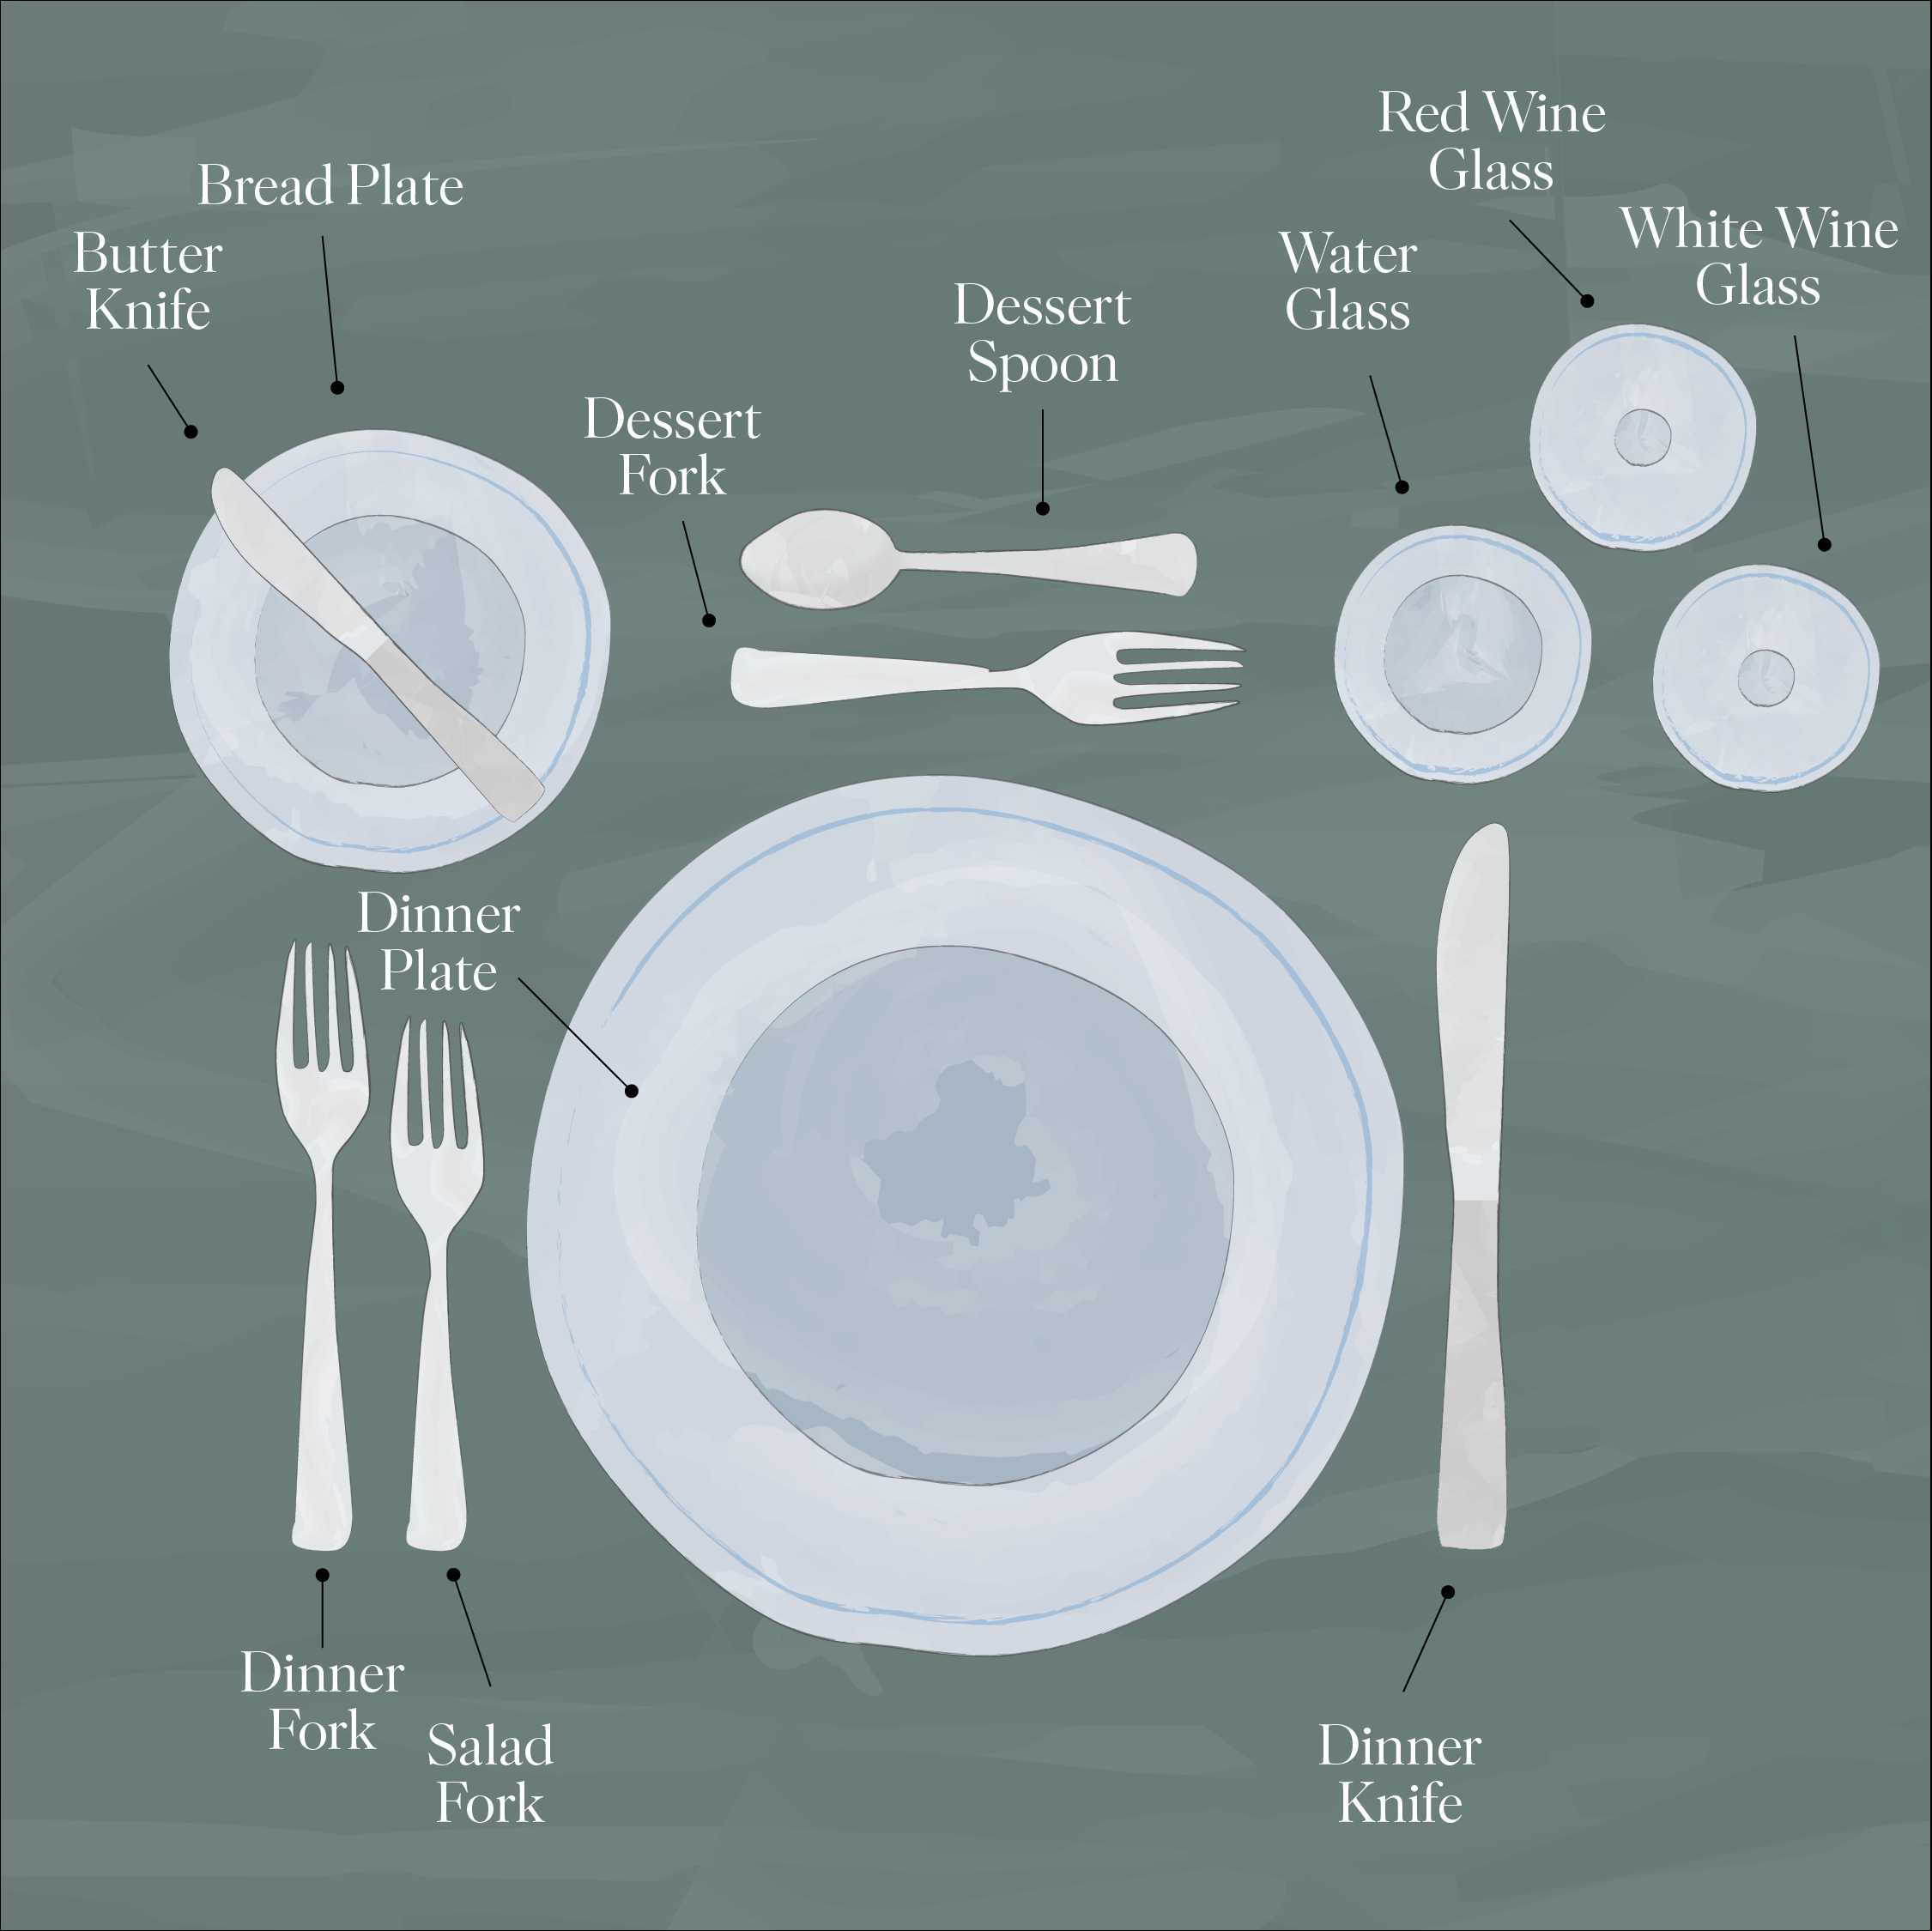 Formal Dining Table Illustration for Main Course